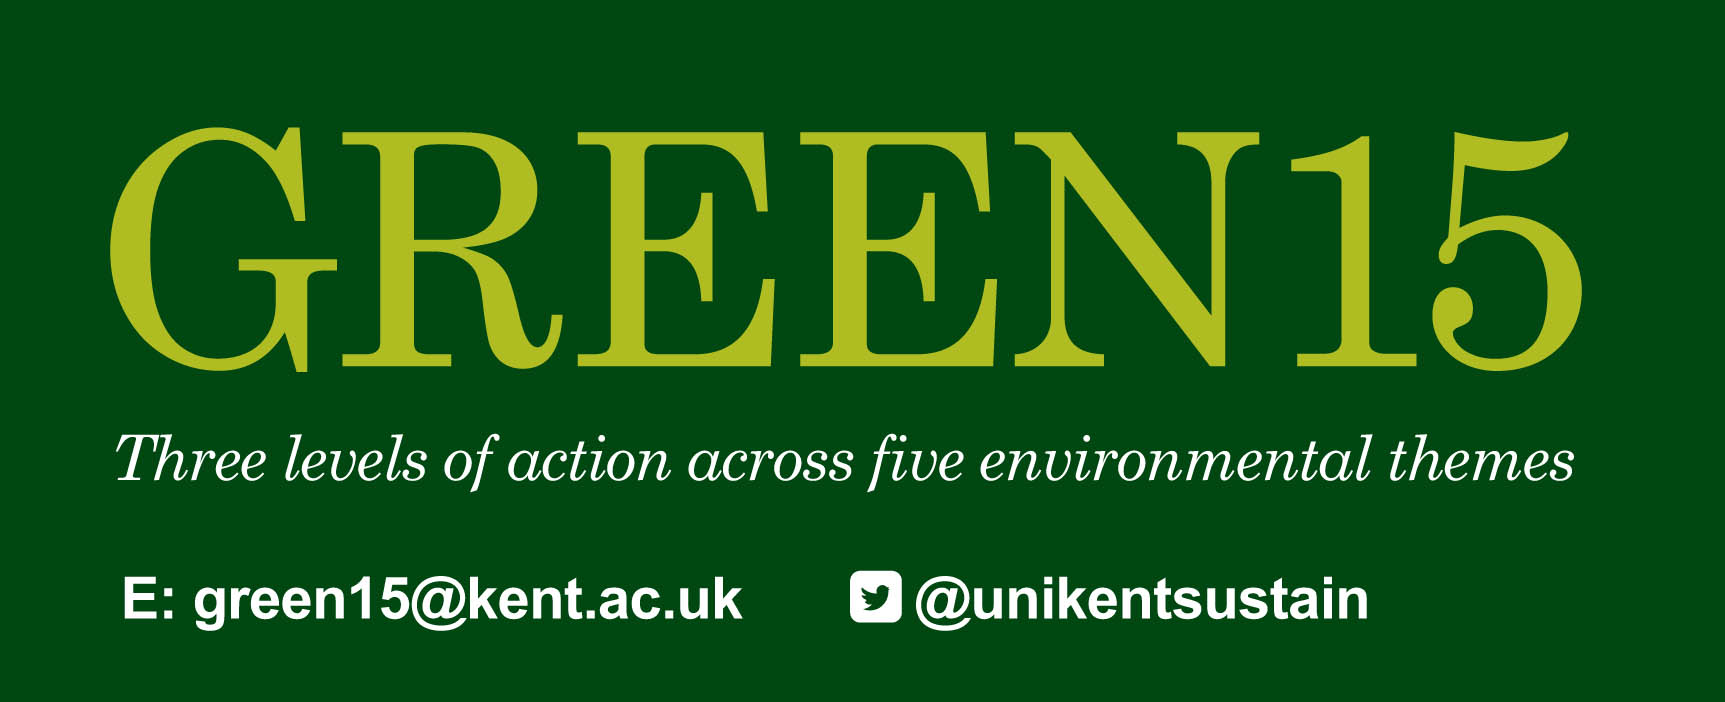 Green15 Enrolment Management Services University of Kent